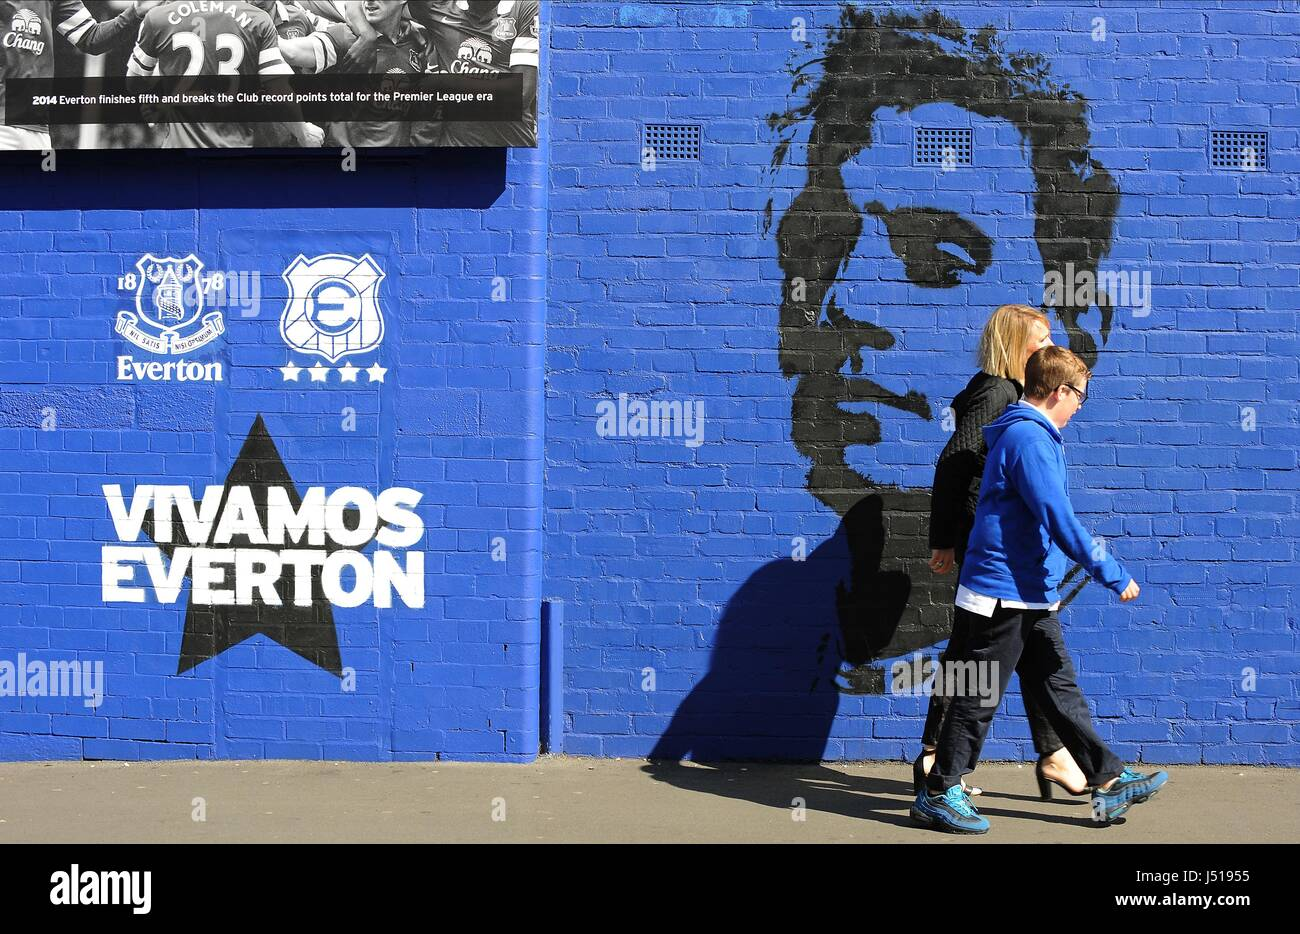 WALL MURAL GOODISON PARK GOODISON PARK GOODISON PARK EVERTON ENGLAND 23 August 2014 Stock Photo